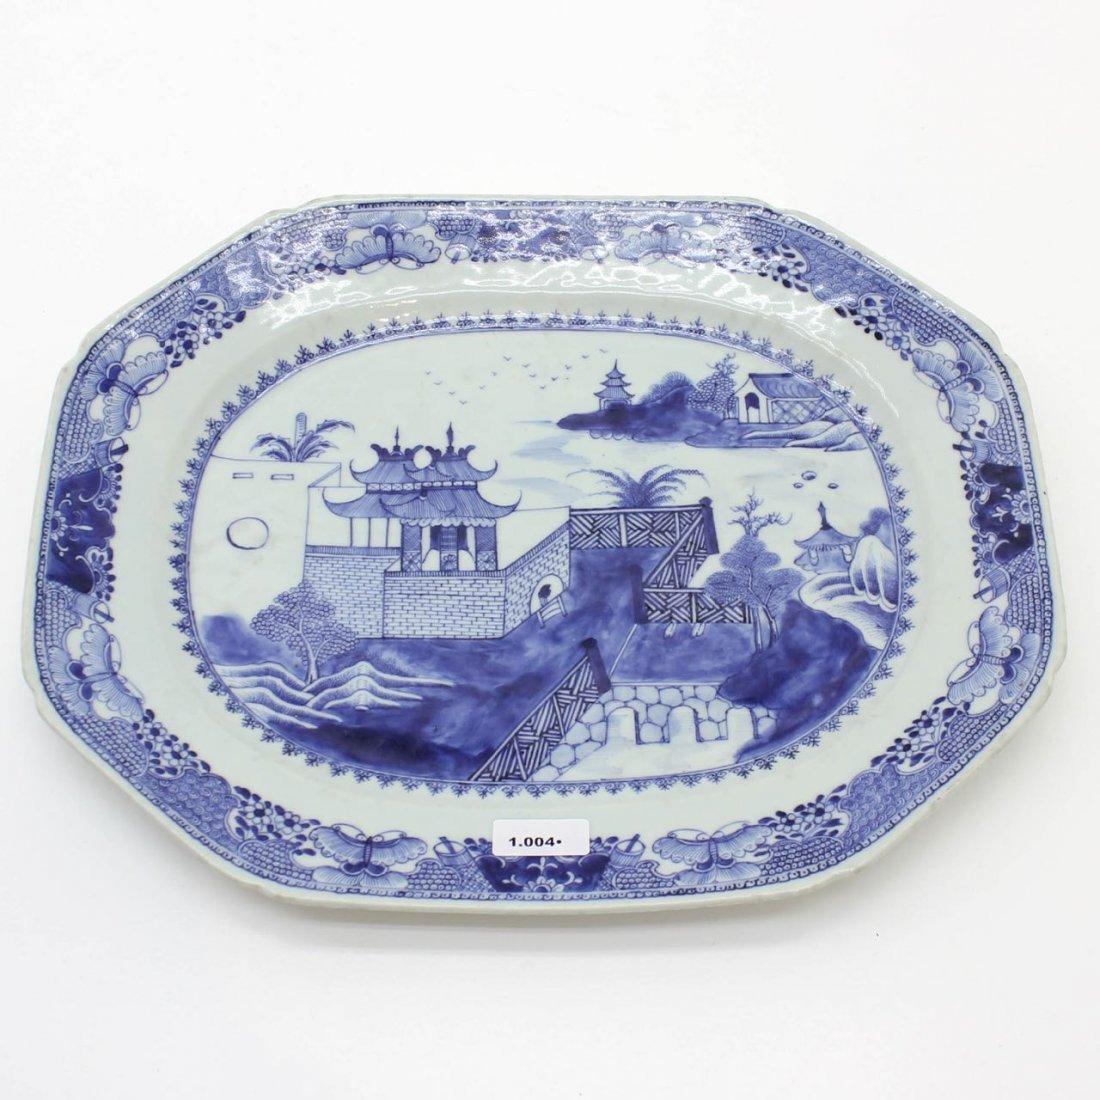 18th Century China Porcelain Platter